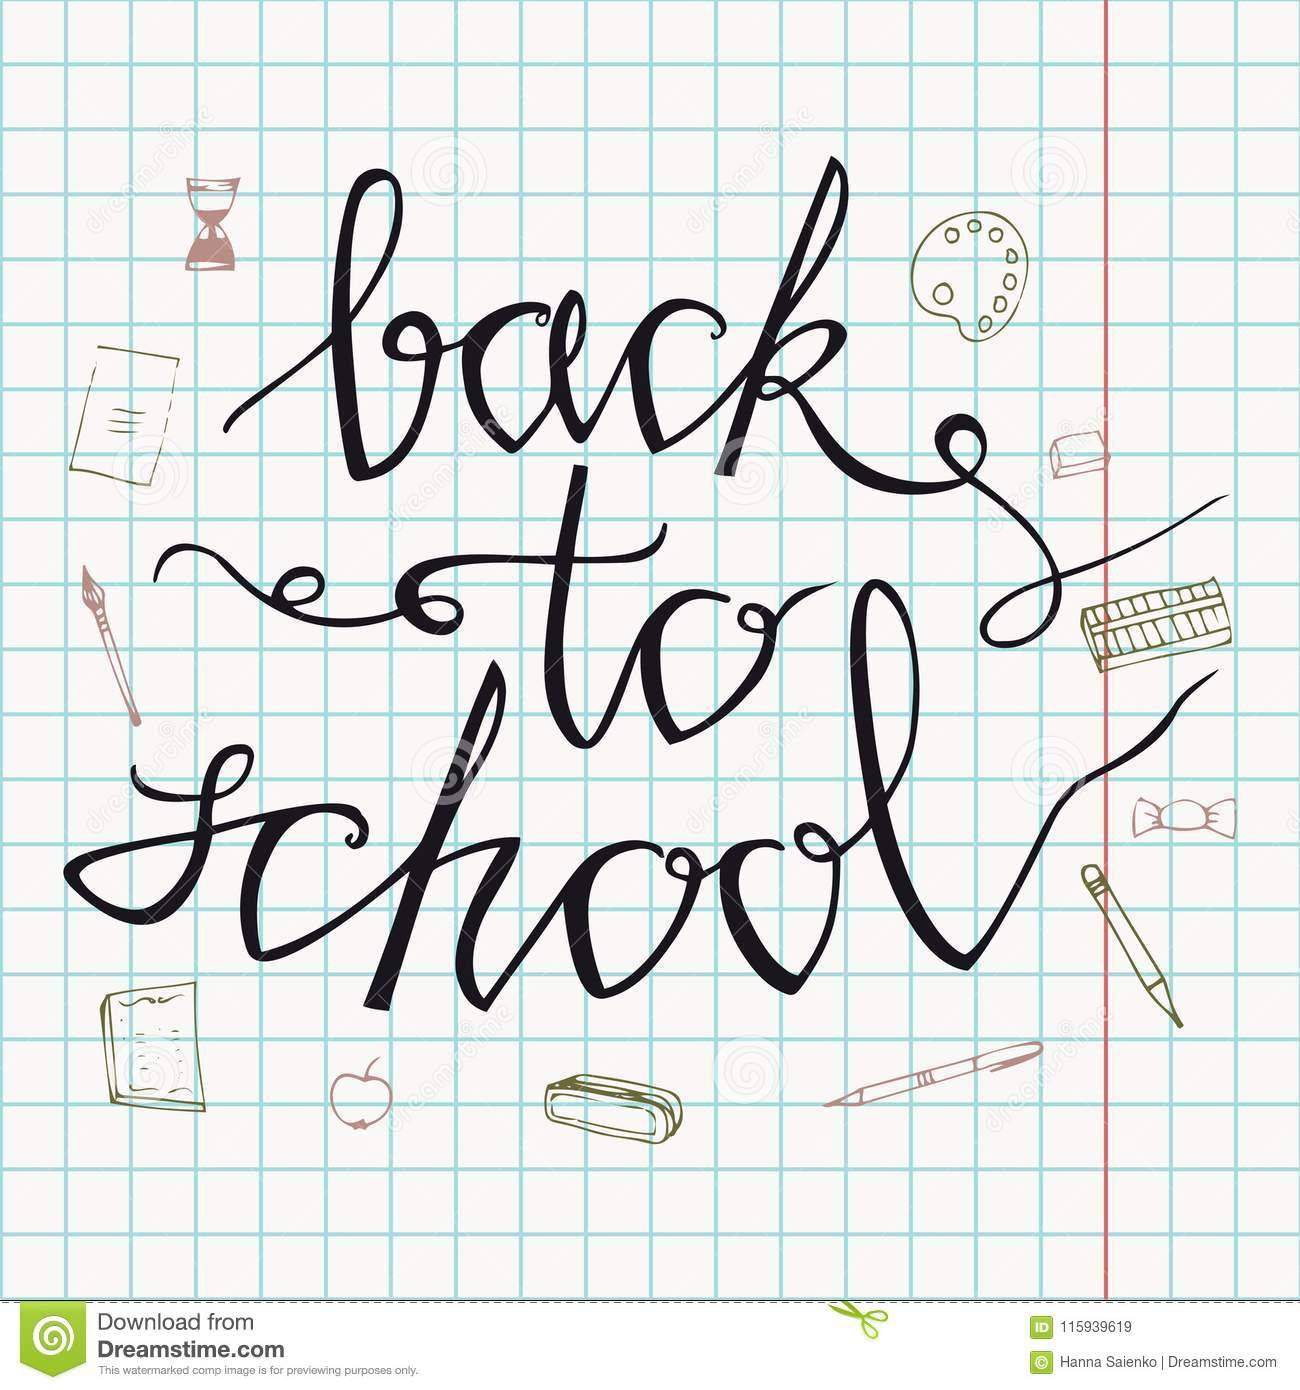 Back to school. Hand drawn back to school doodles. Paper Background. Vector illustration. Hand drawing school items on a sheet of